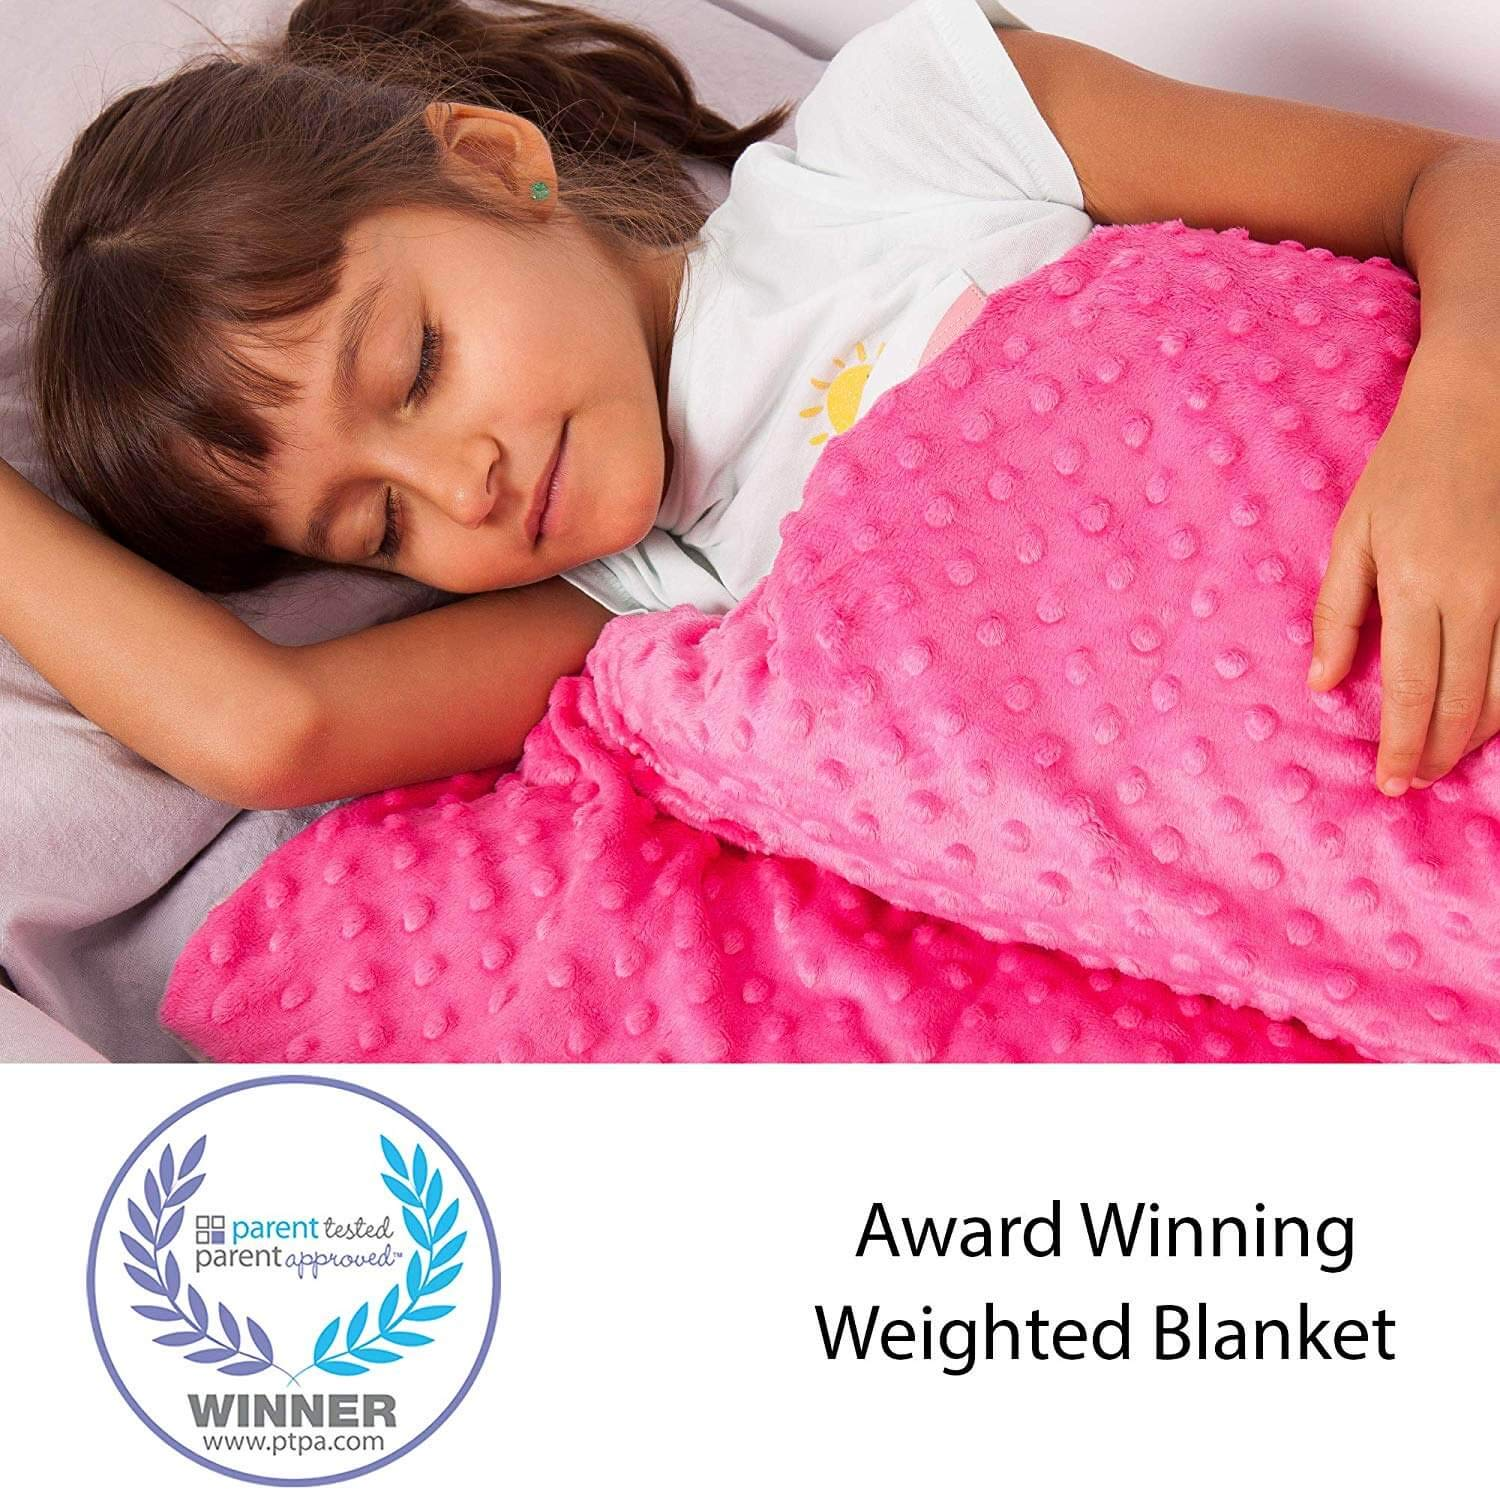 Supersoft 5 Lbs Calming Weighted Blanket for Kids - 36'' x 48'' Children Heavy Blanket for Sleeping with Minky Cover - Pink Kid Comfort Sensory Blankets for Girls